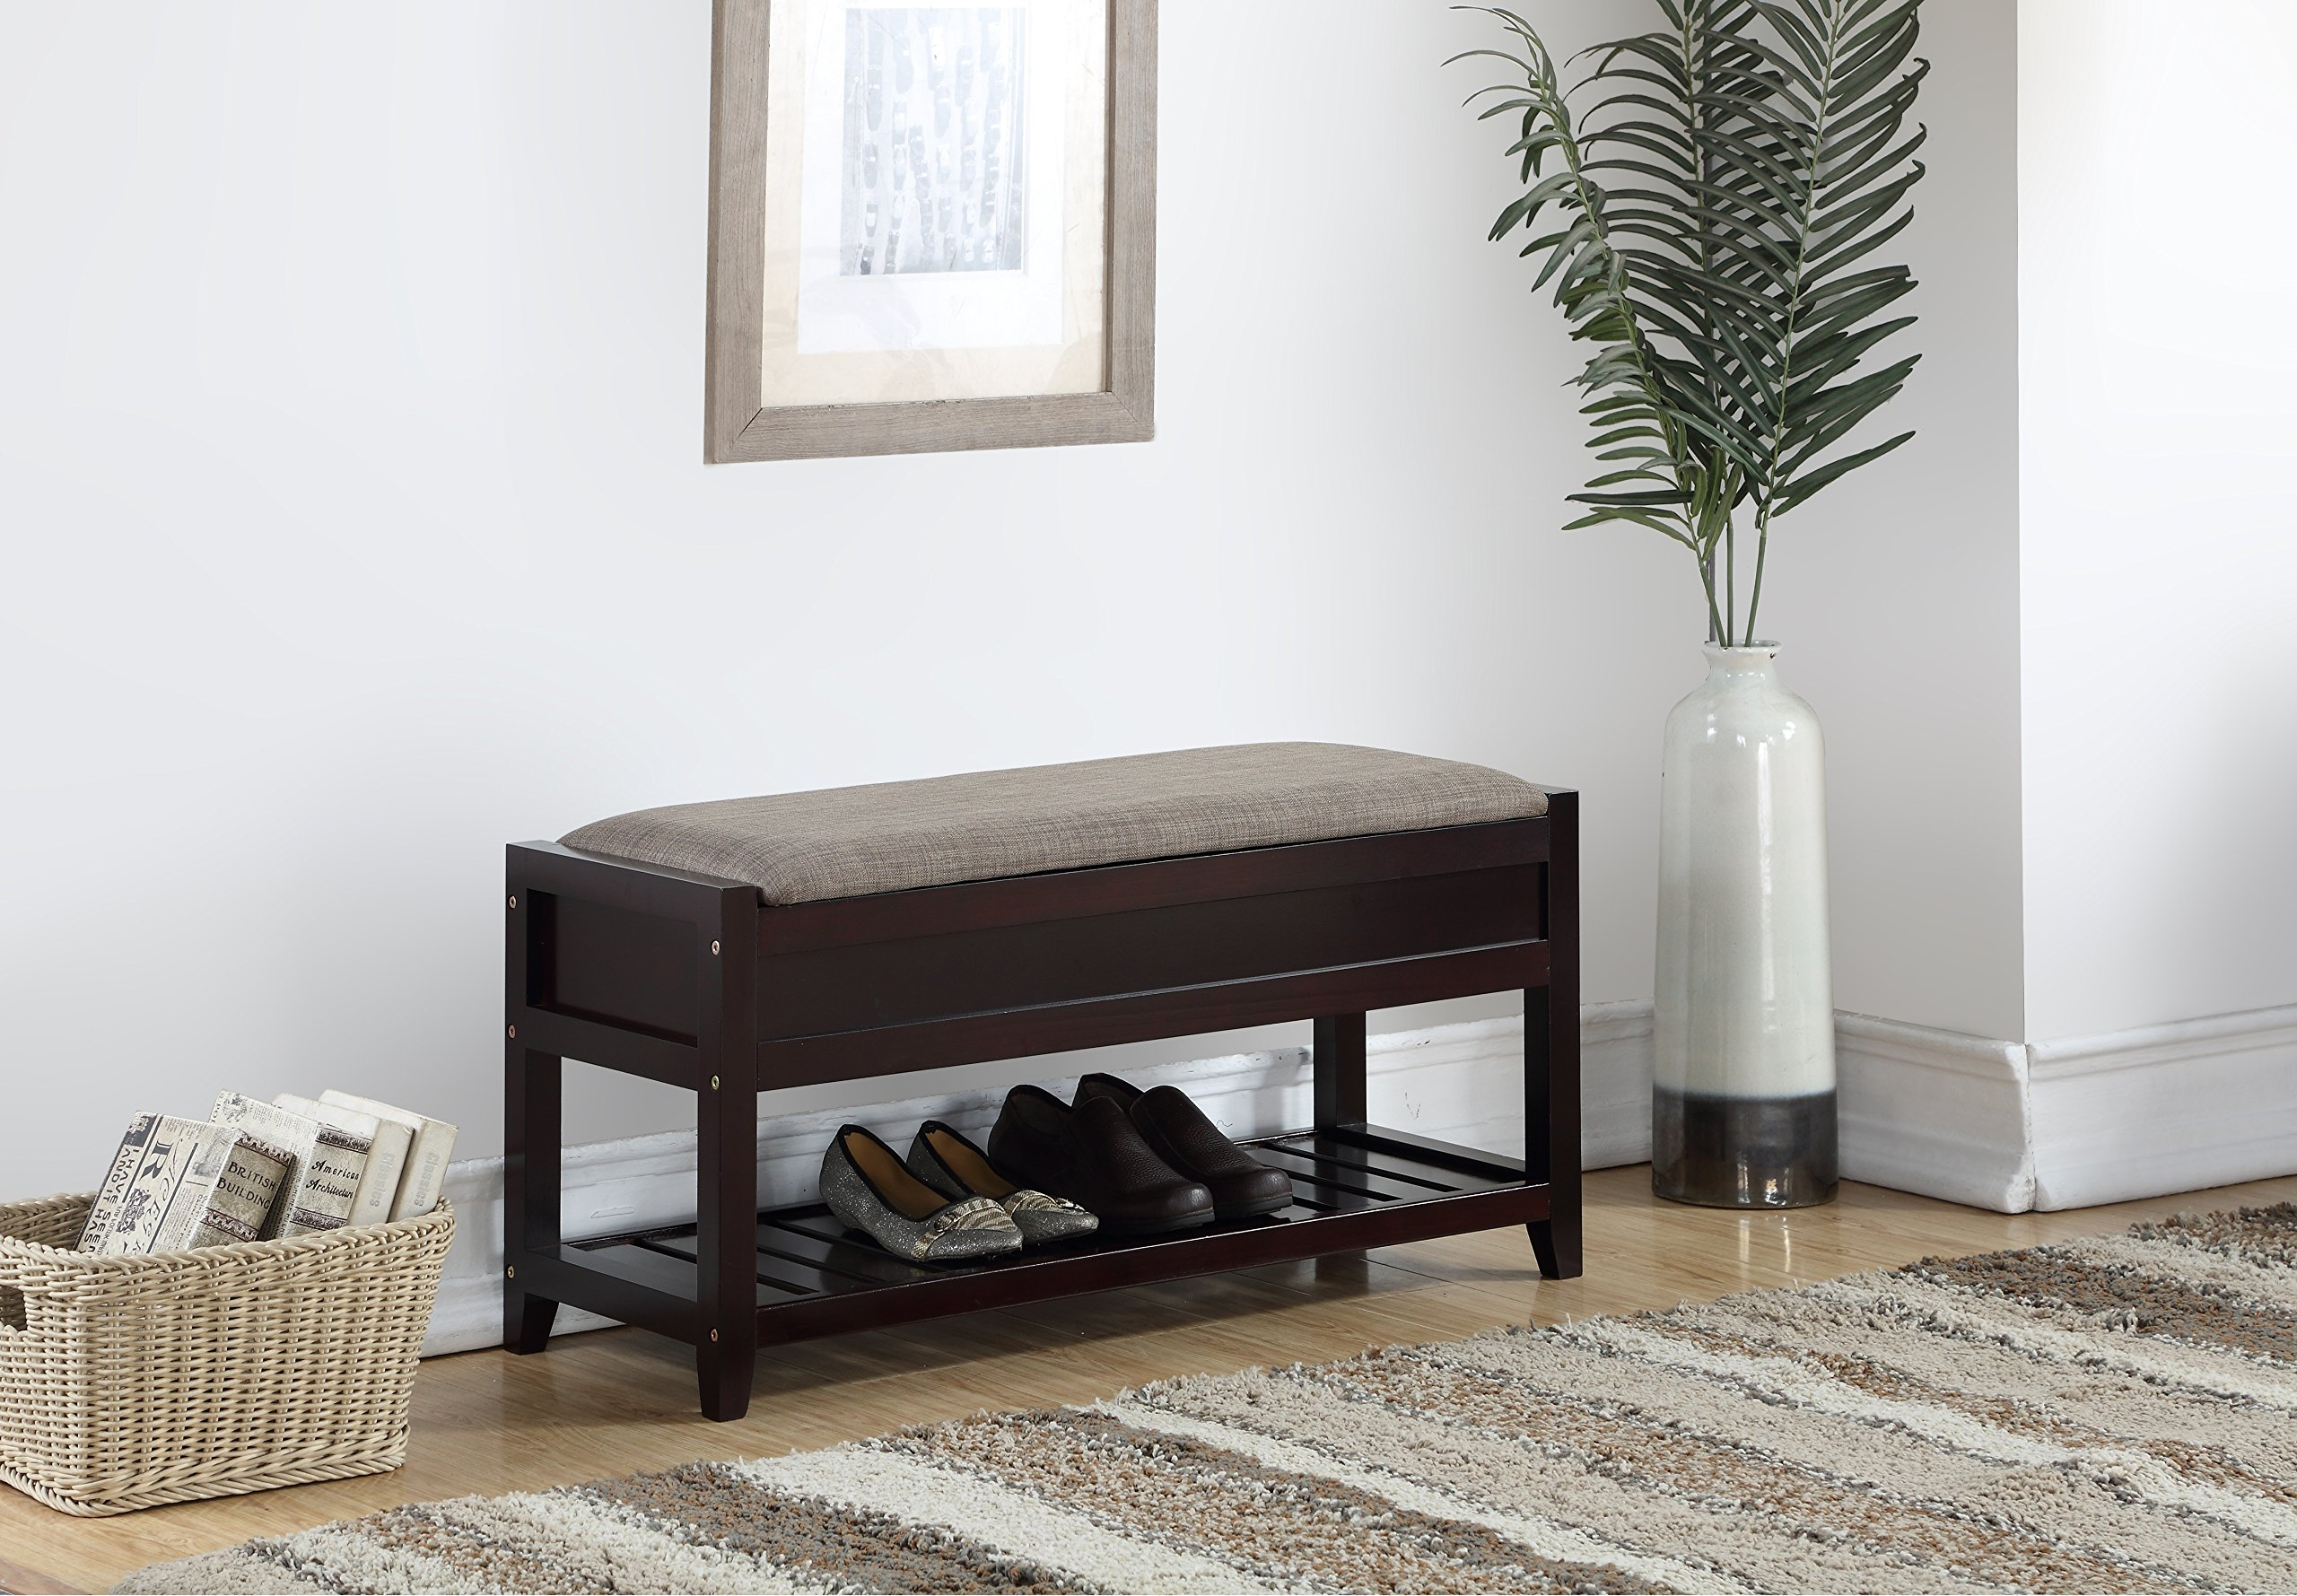 Roundhill Furniture 3431EP Rouen Seating Bench with Shoe Storage, Espresso